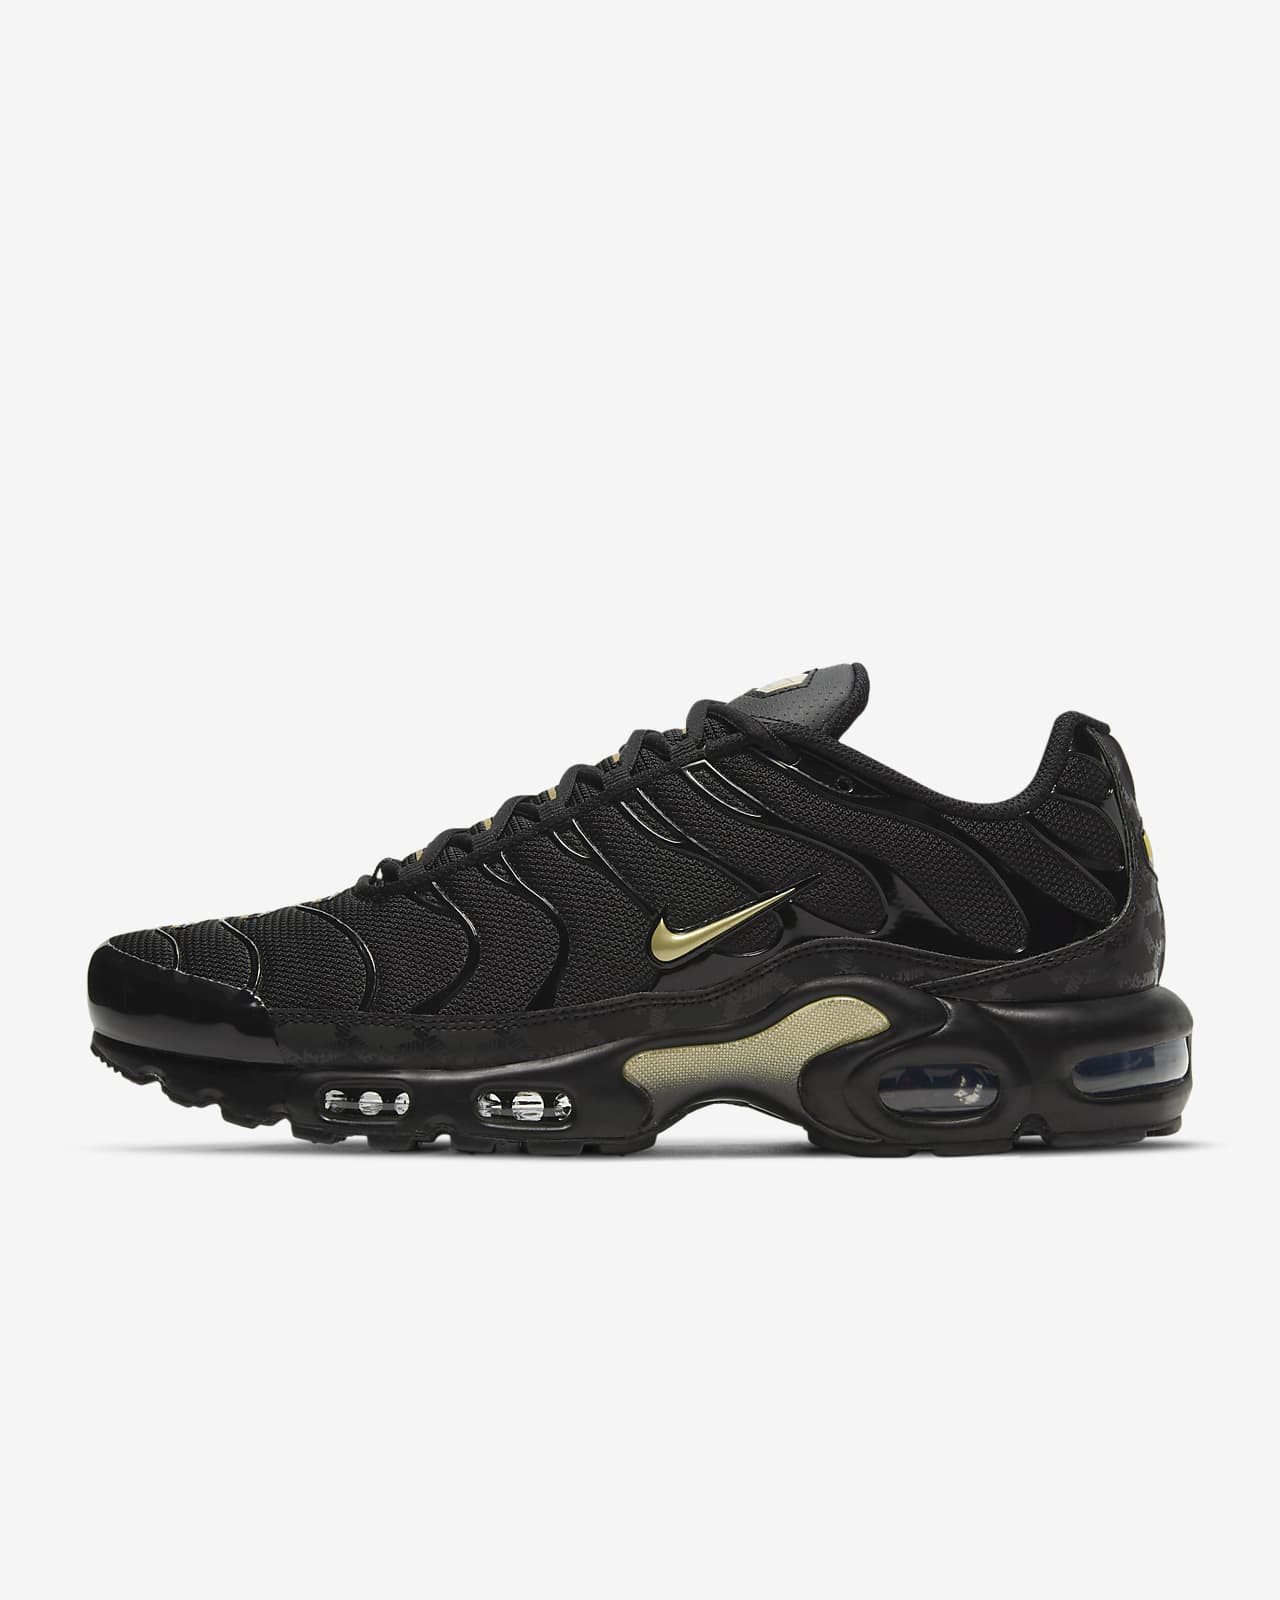 Nike Air Max Plus Men's Shoe